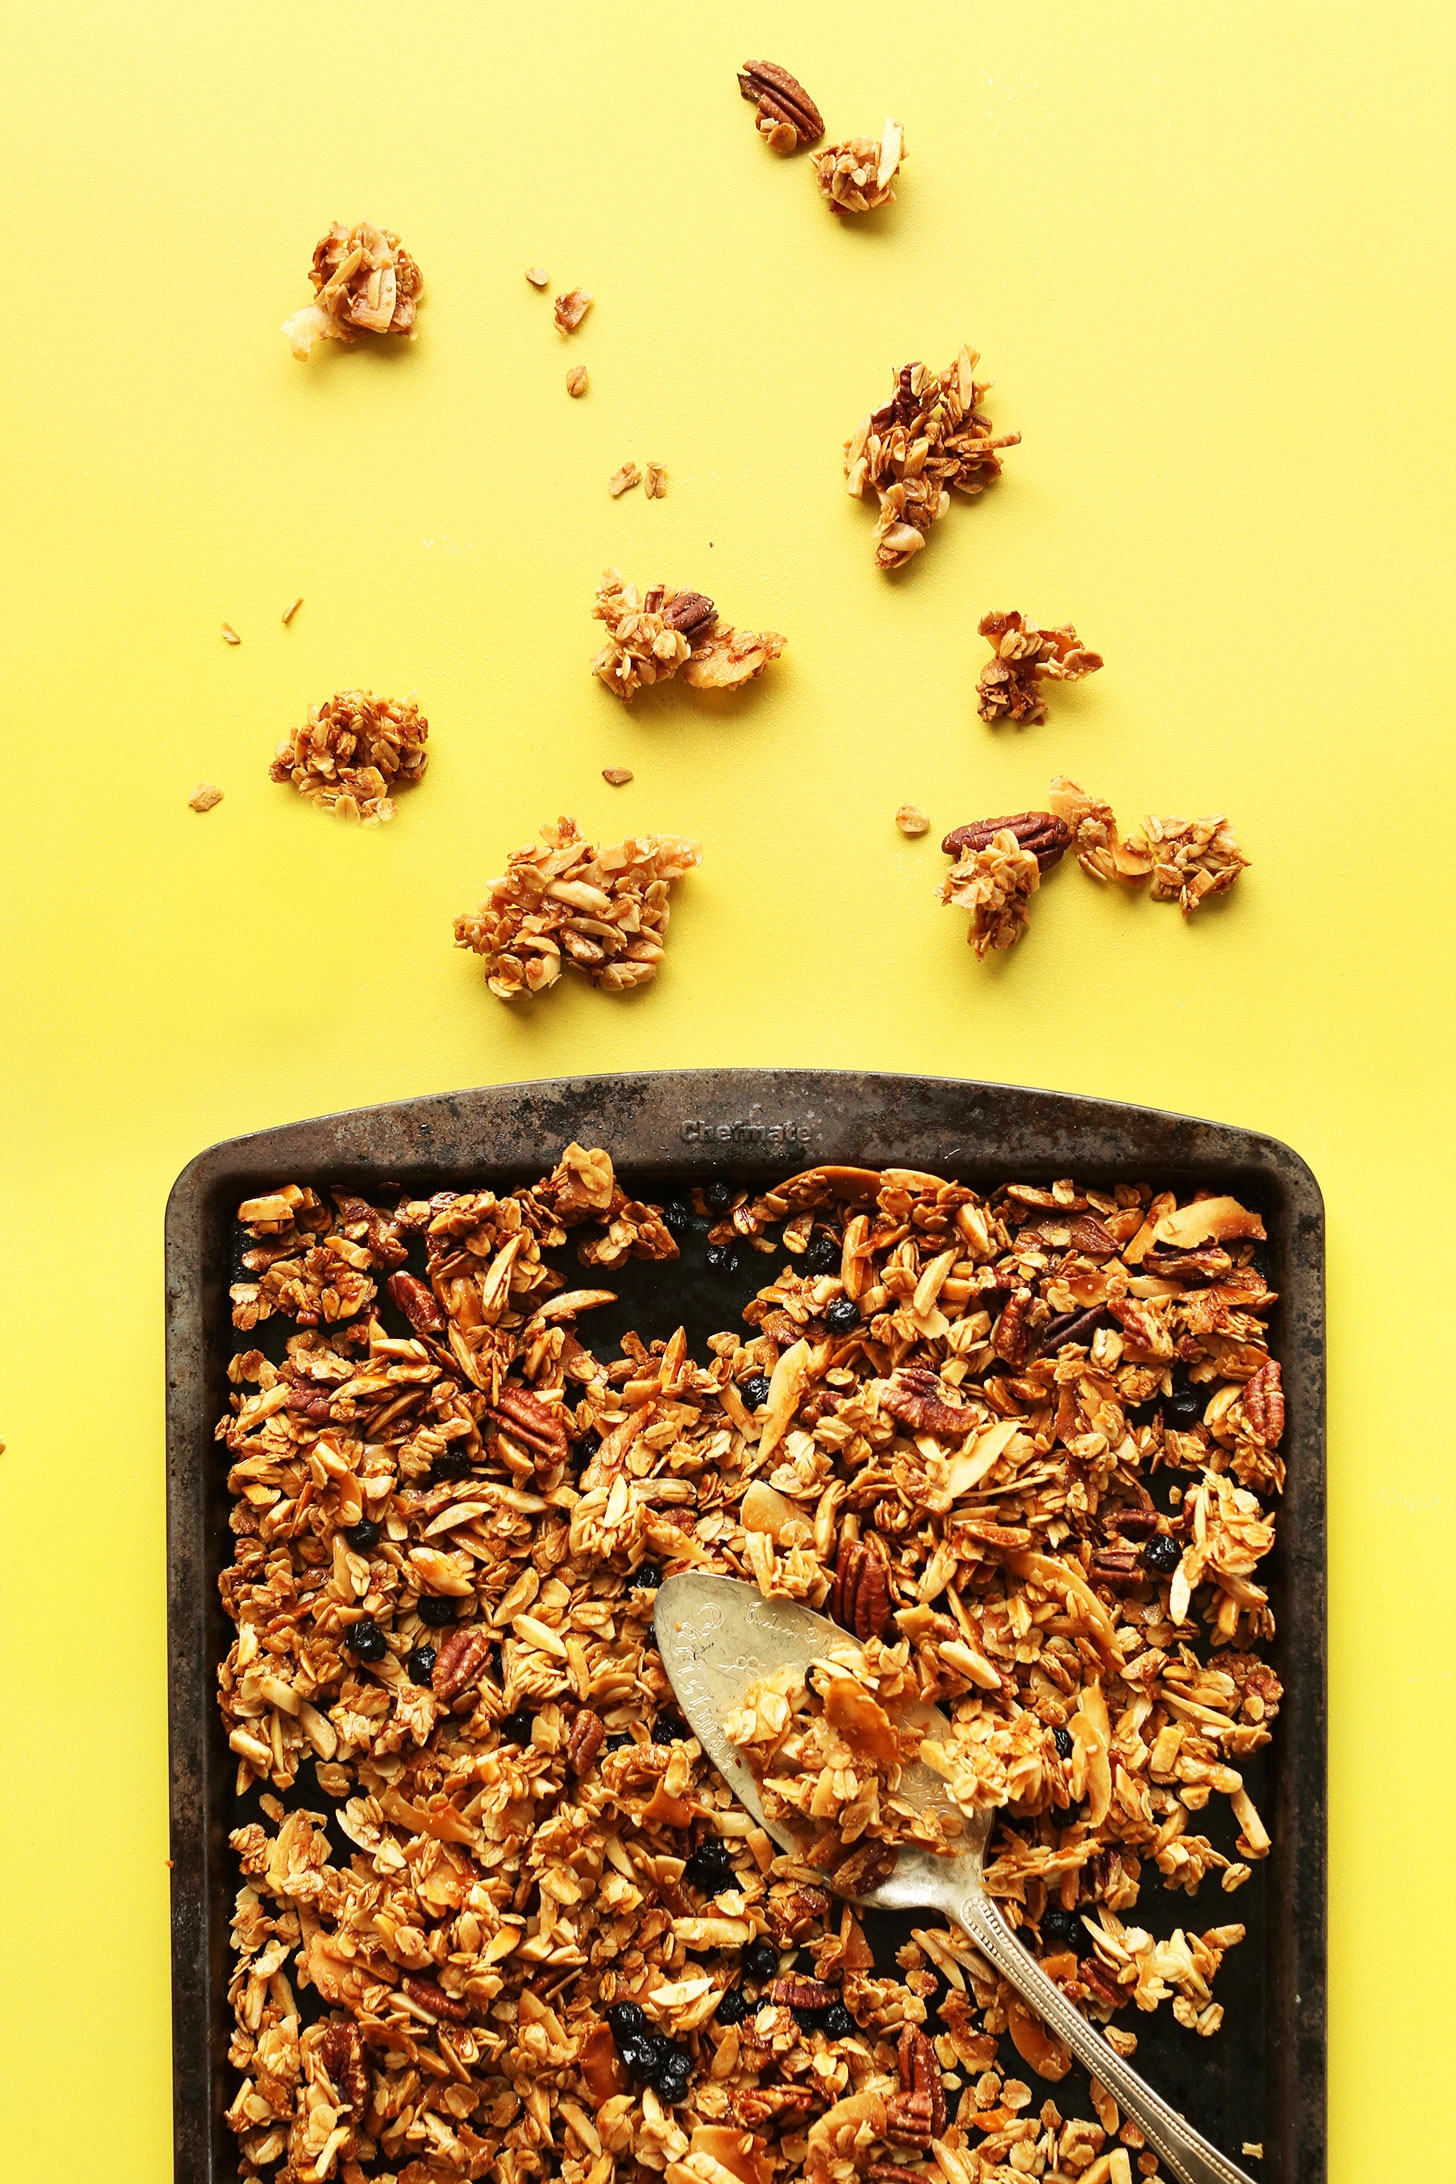 10-ingredient SUPER CHUNKY Coconut Granola with dried blueberries! Crunchy, naturally sweetened, butter free and SO delicious! #vegan #granola #glutenfree #recipe #healthy #minimalistbaker